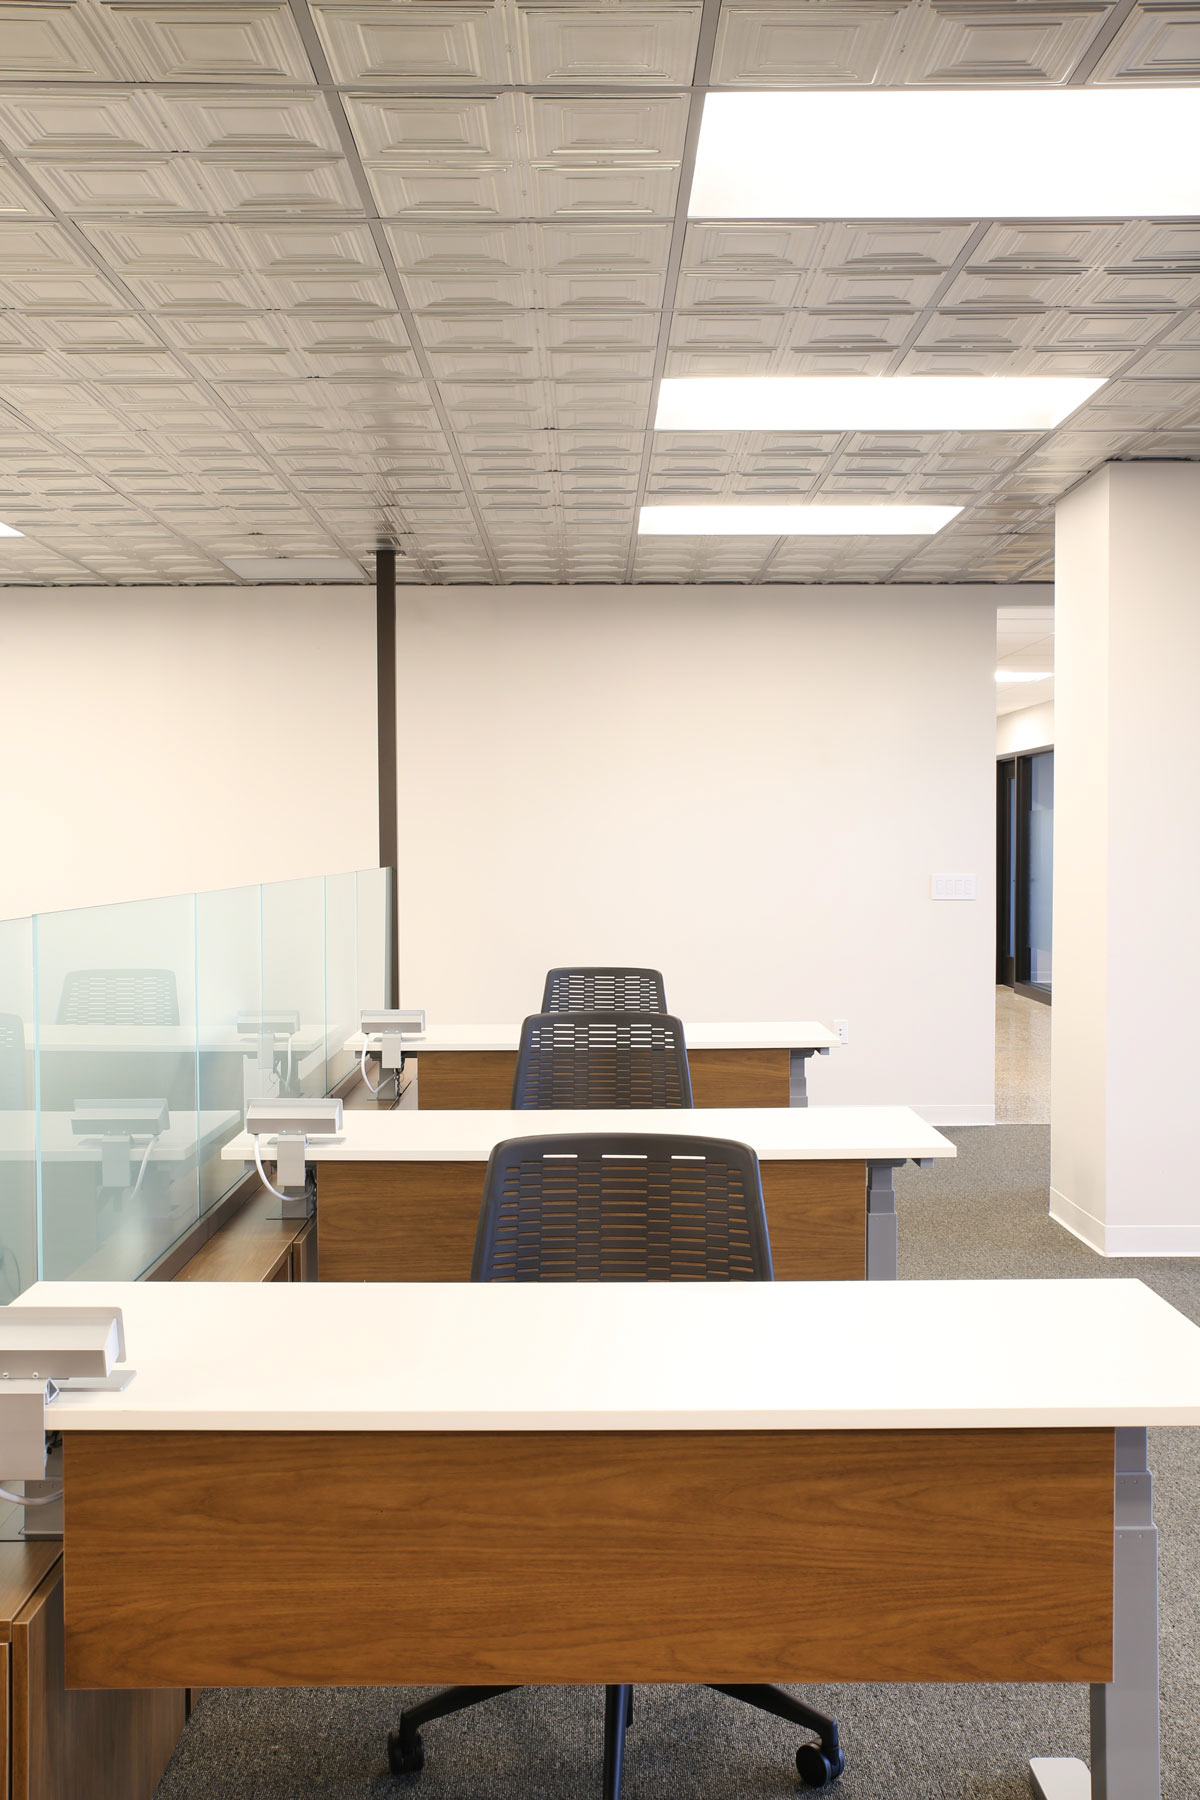 Ample lighting allows for productive and focused work at COCO in Minneapolis, Minnesota, furnished by iSpace Environments.